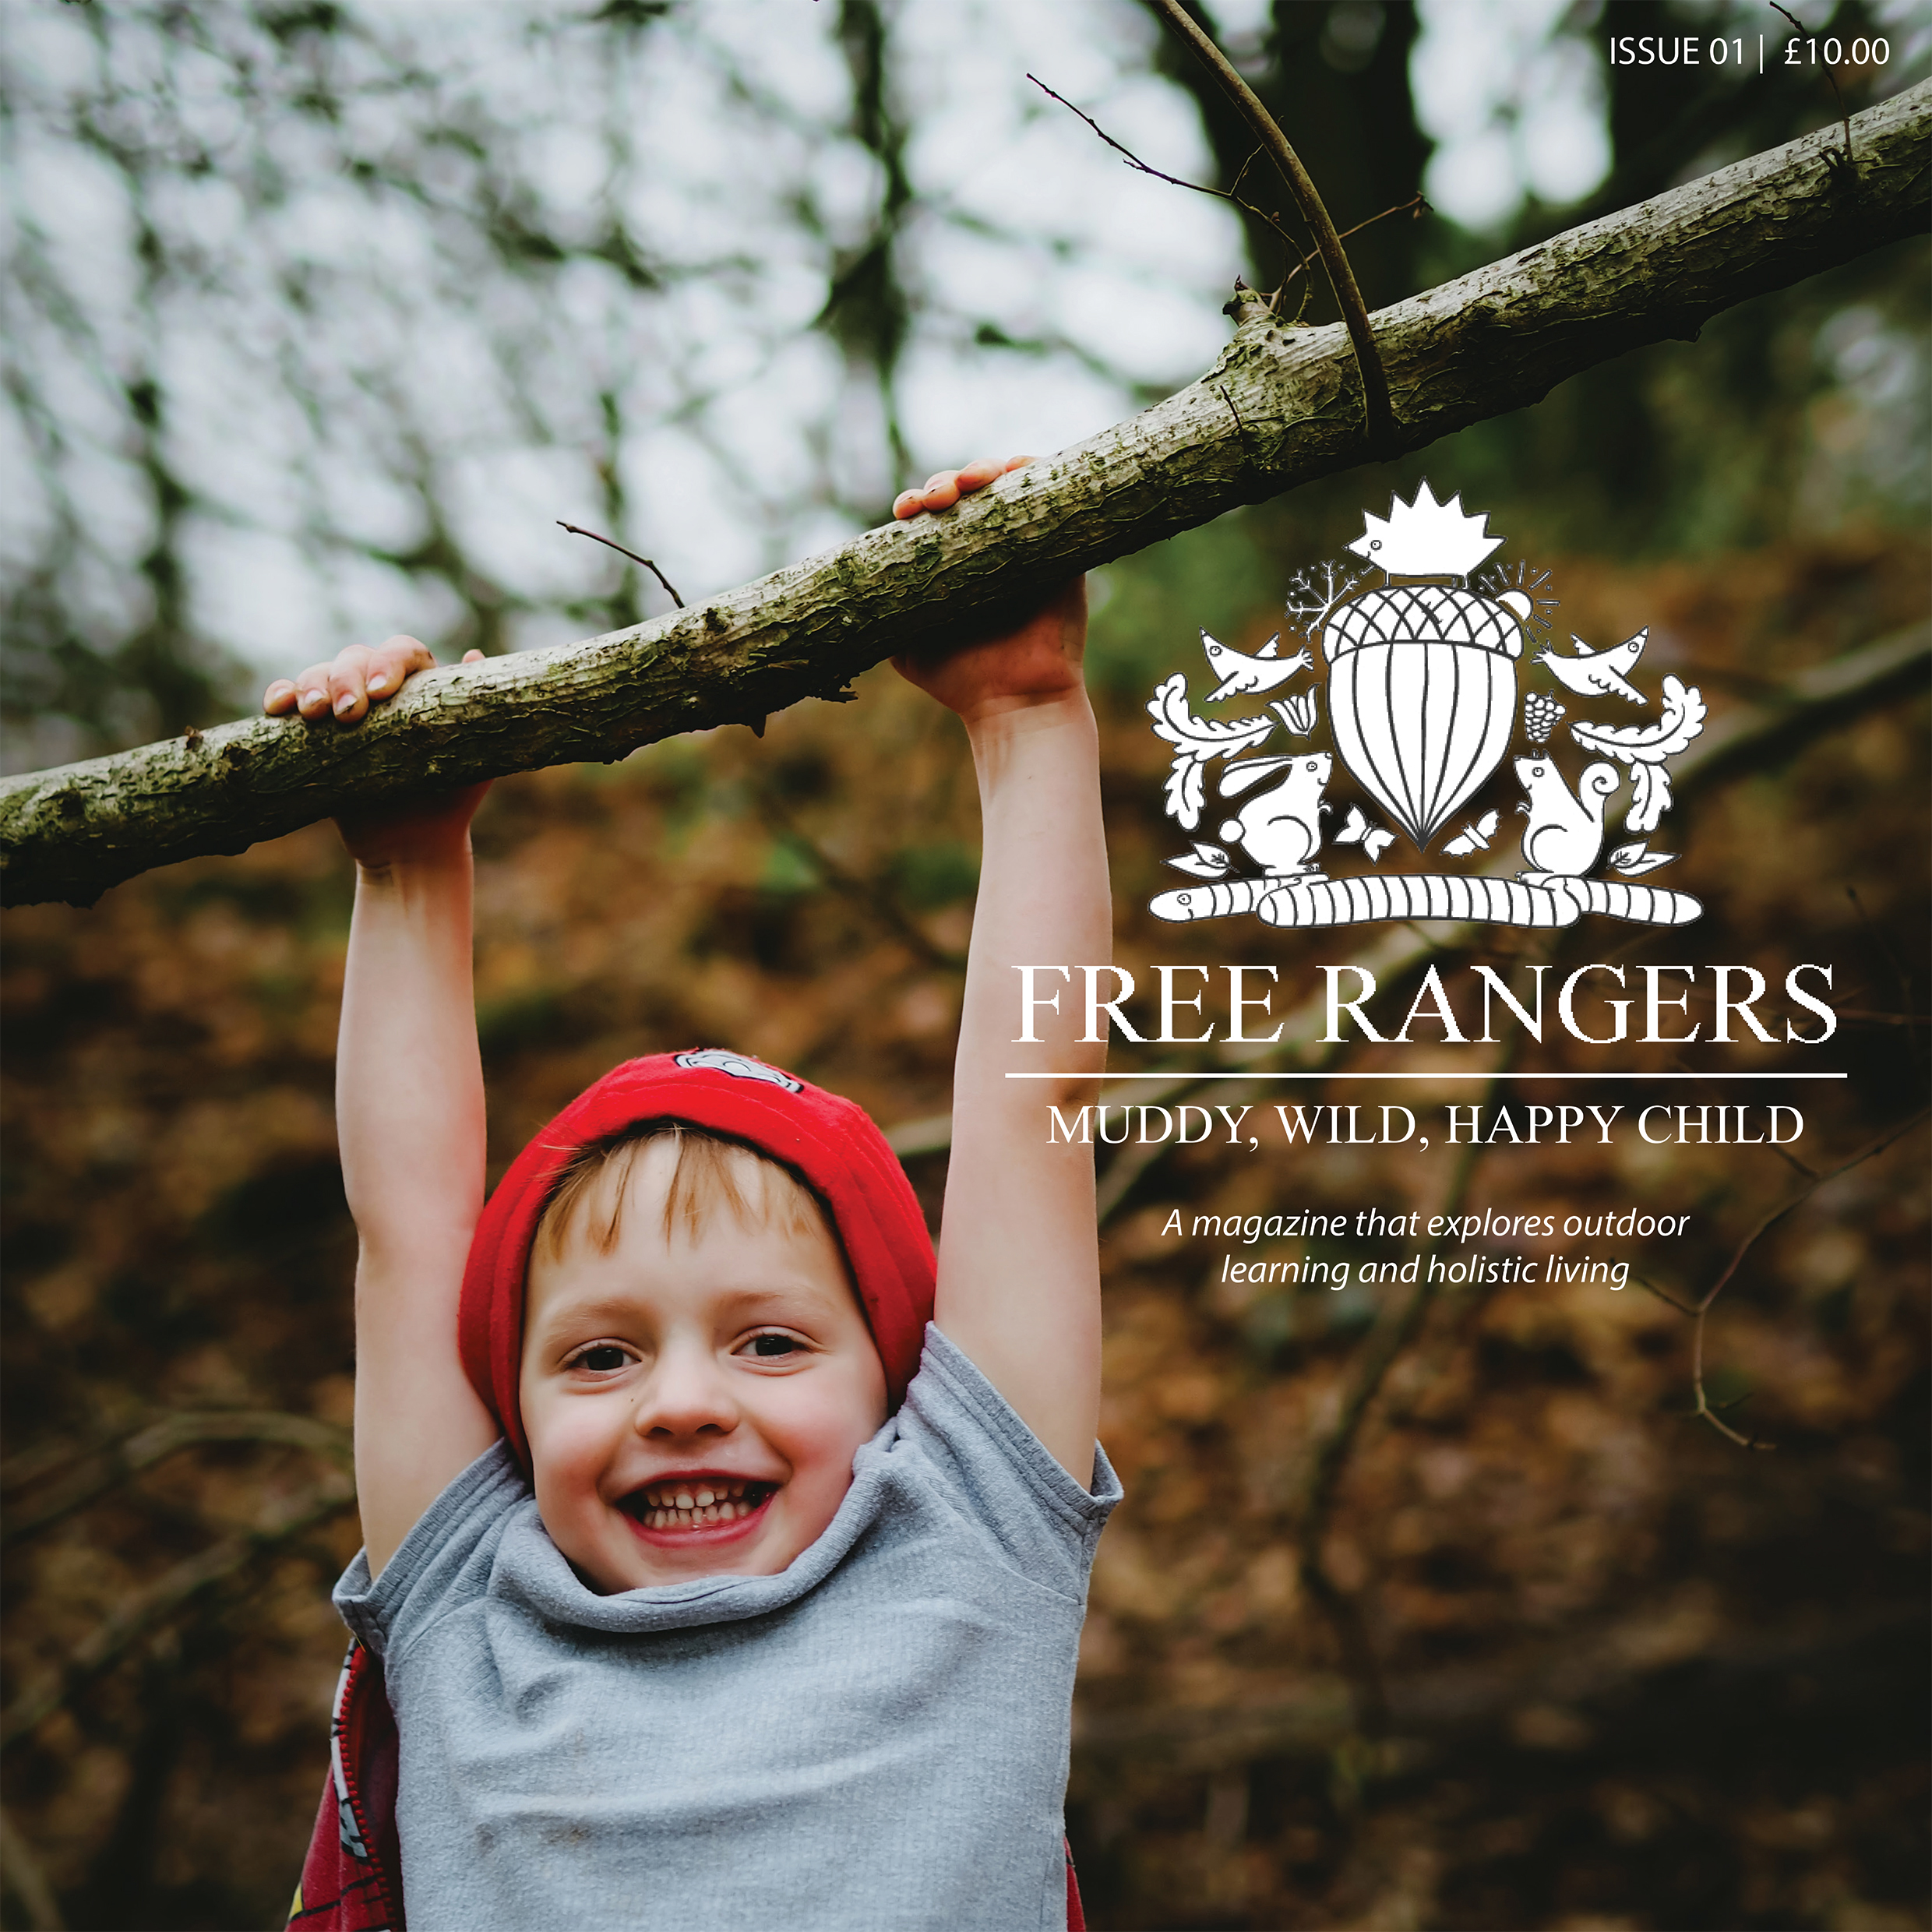 All profits will go towards building a forest school for primary aged children at Free Rangers!   FIND OUT MORE